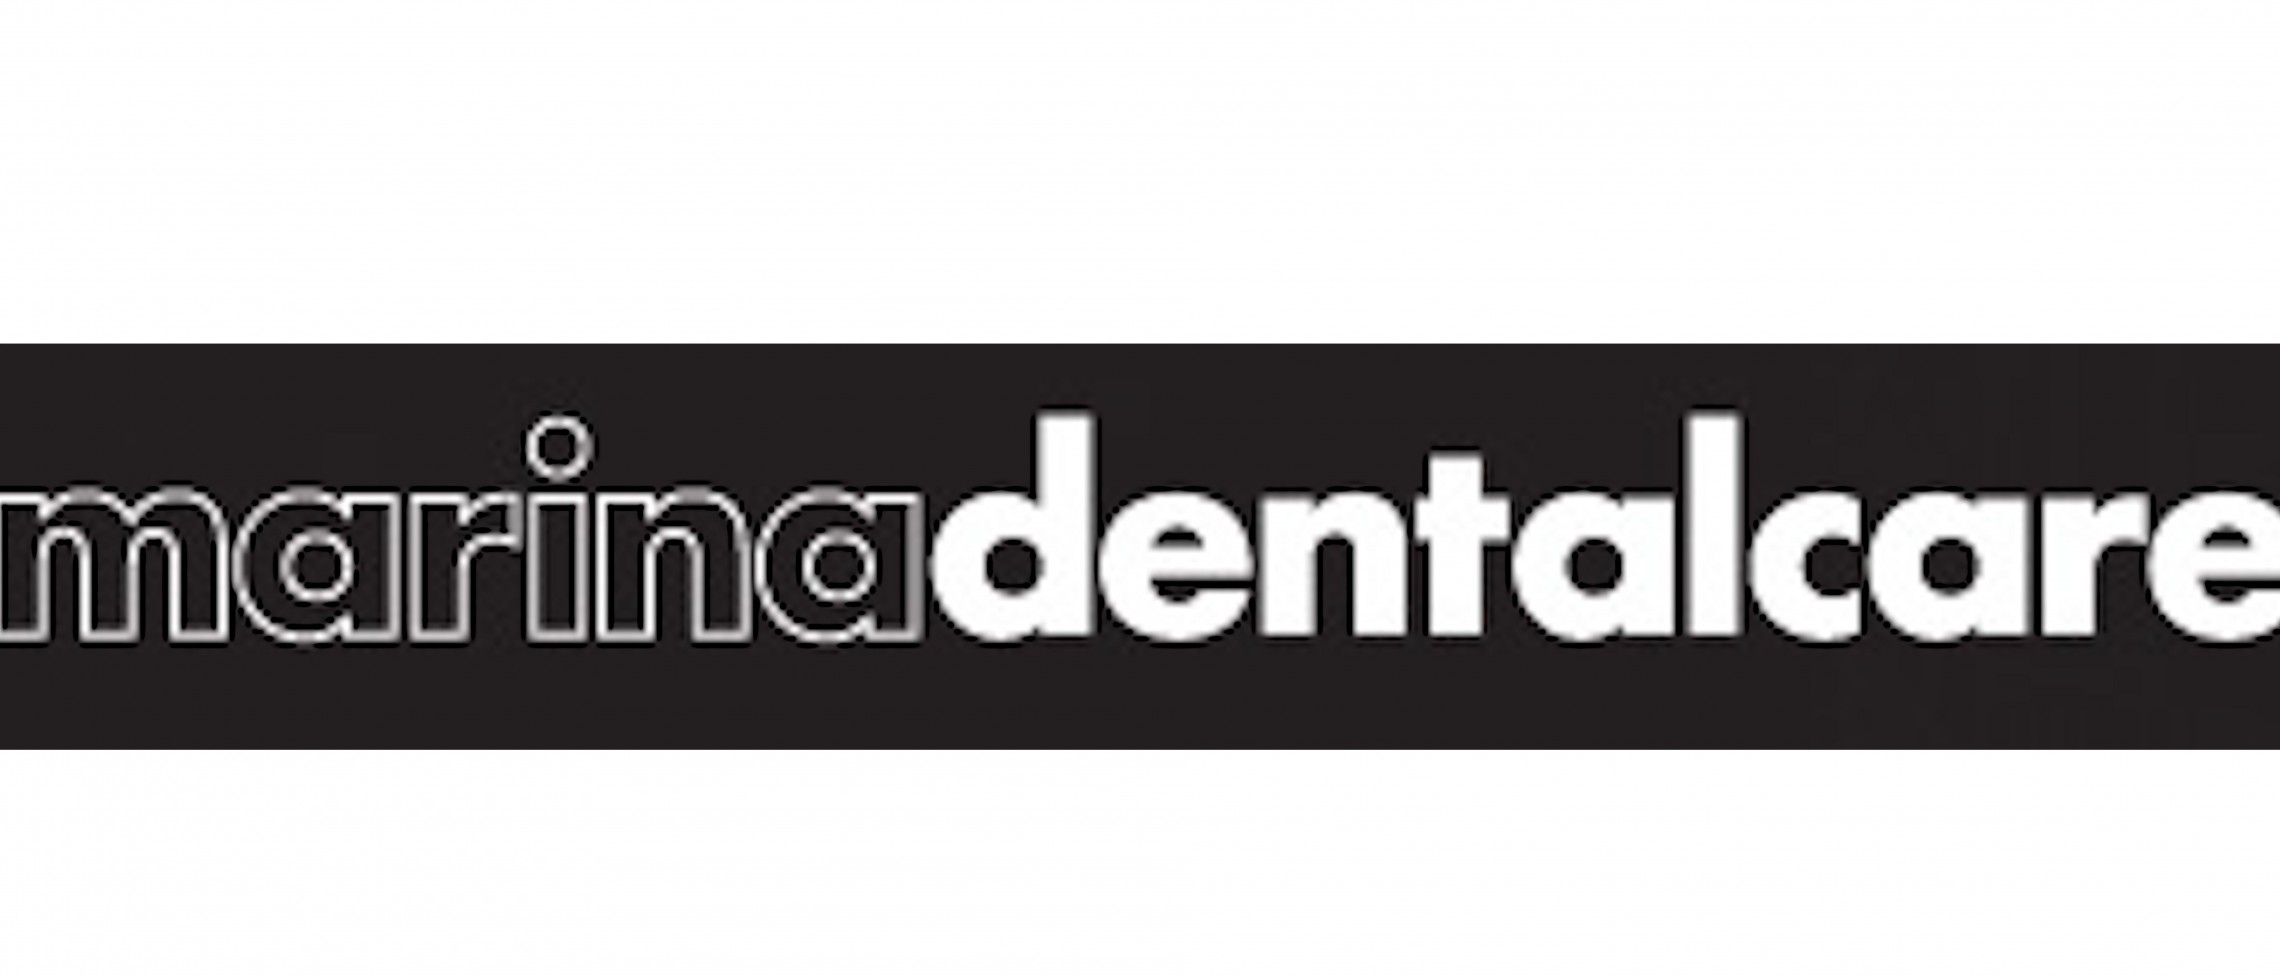 Marina Dental Care - The MiSmile Network